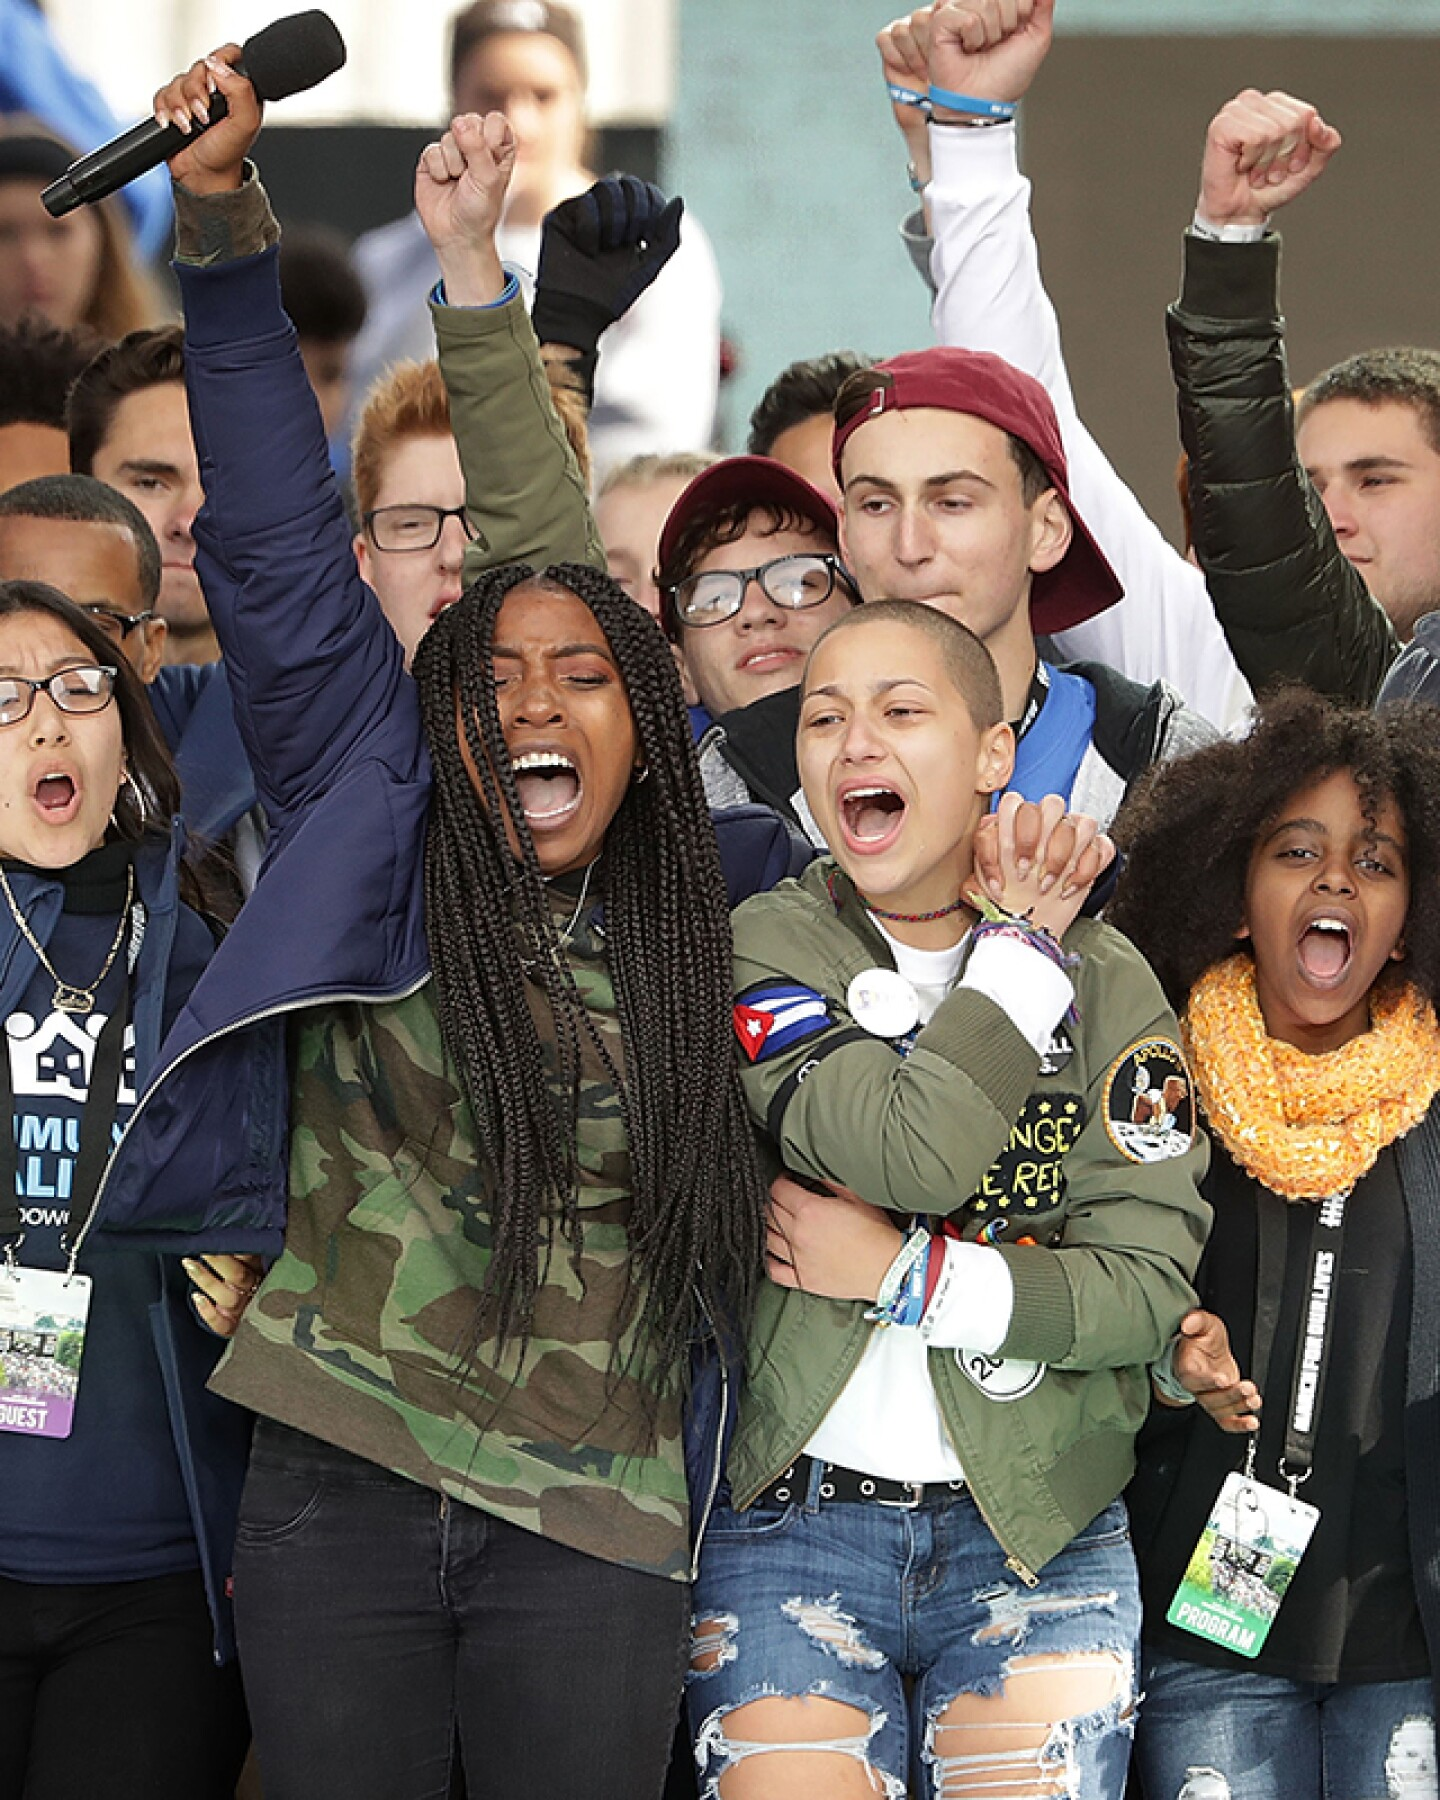 Students from Marjory Stoneman Douglas High School, including Emma Gonzalez (C), stand together on stage with other young victims of gun violence at the March for Our Lives rally on March 24, 2018 in Washington, DC. | Chip Somodevilla/Getty Images